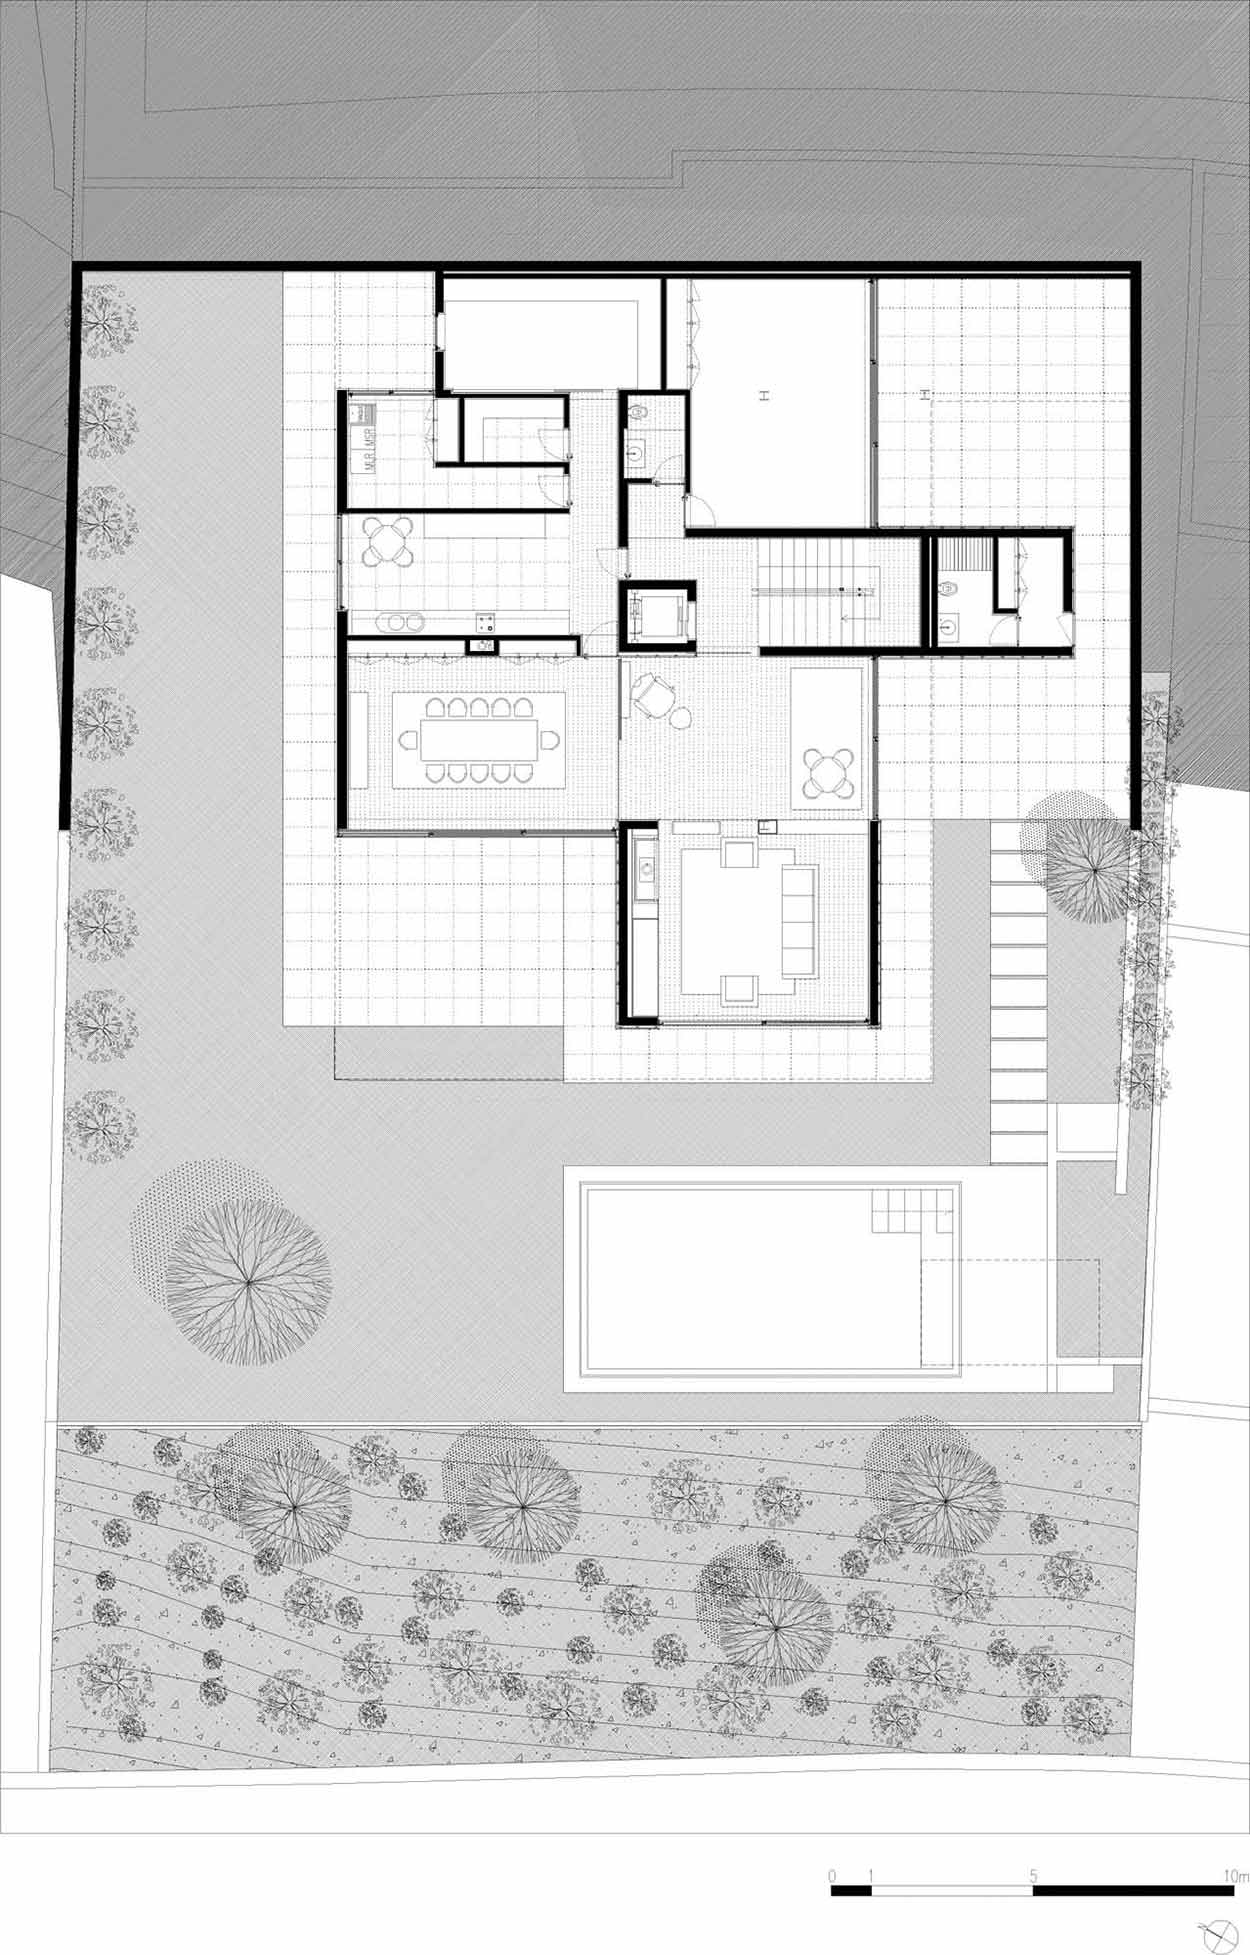 Ground Floor Plan, CS House Portugal by Pitagoras Arquitectos